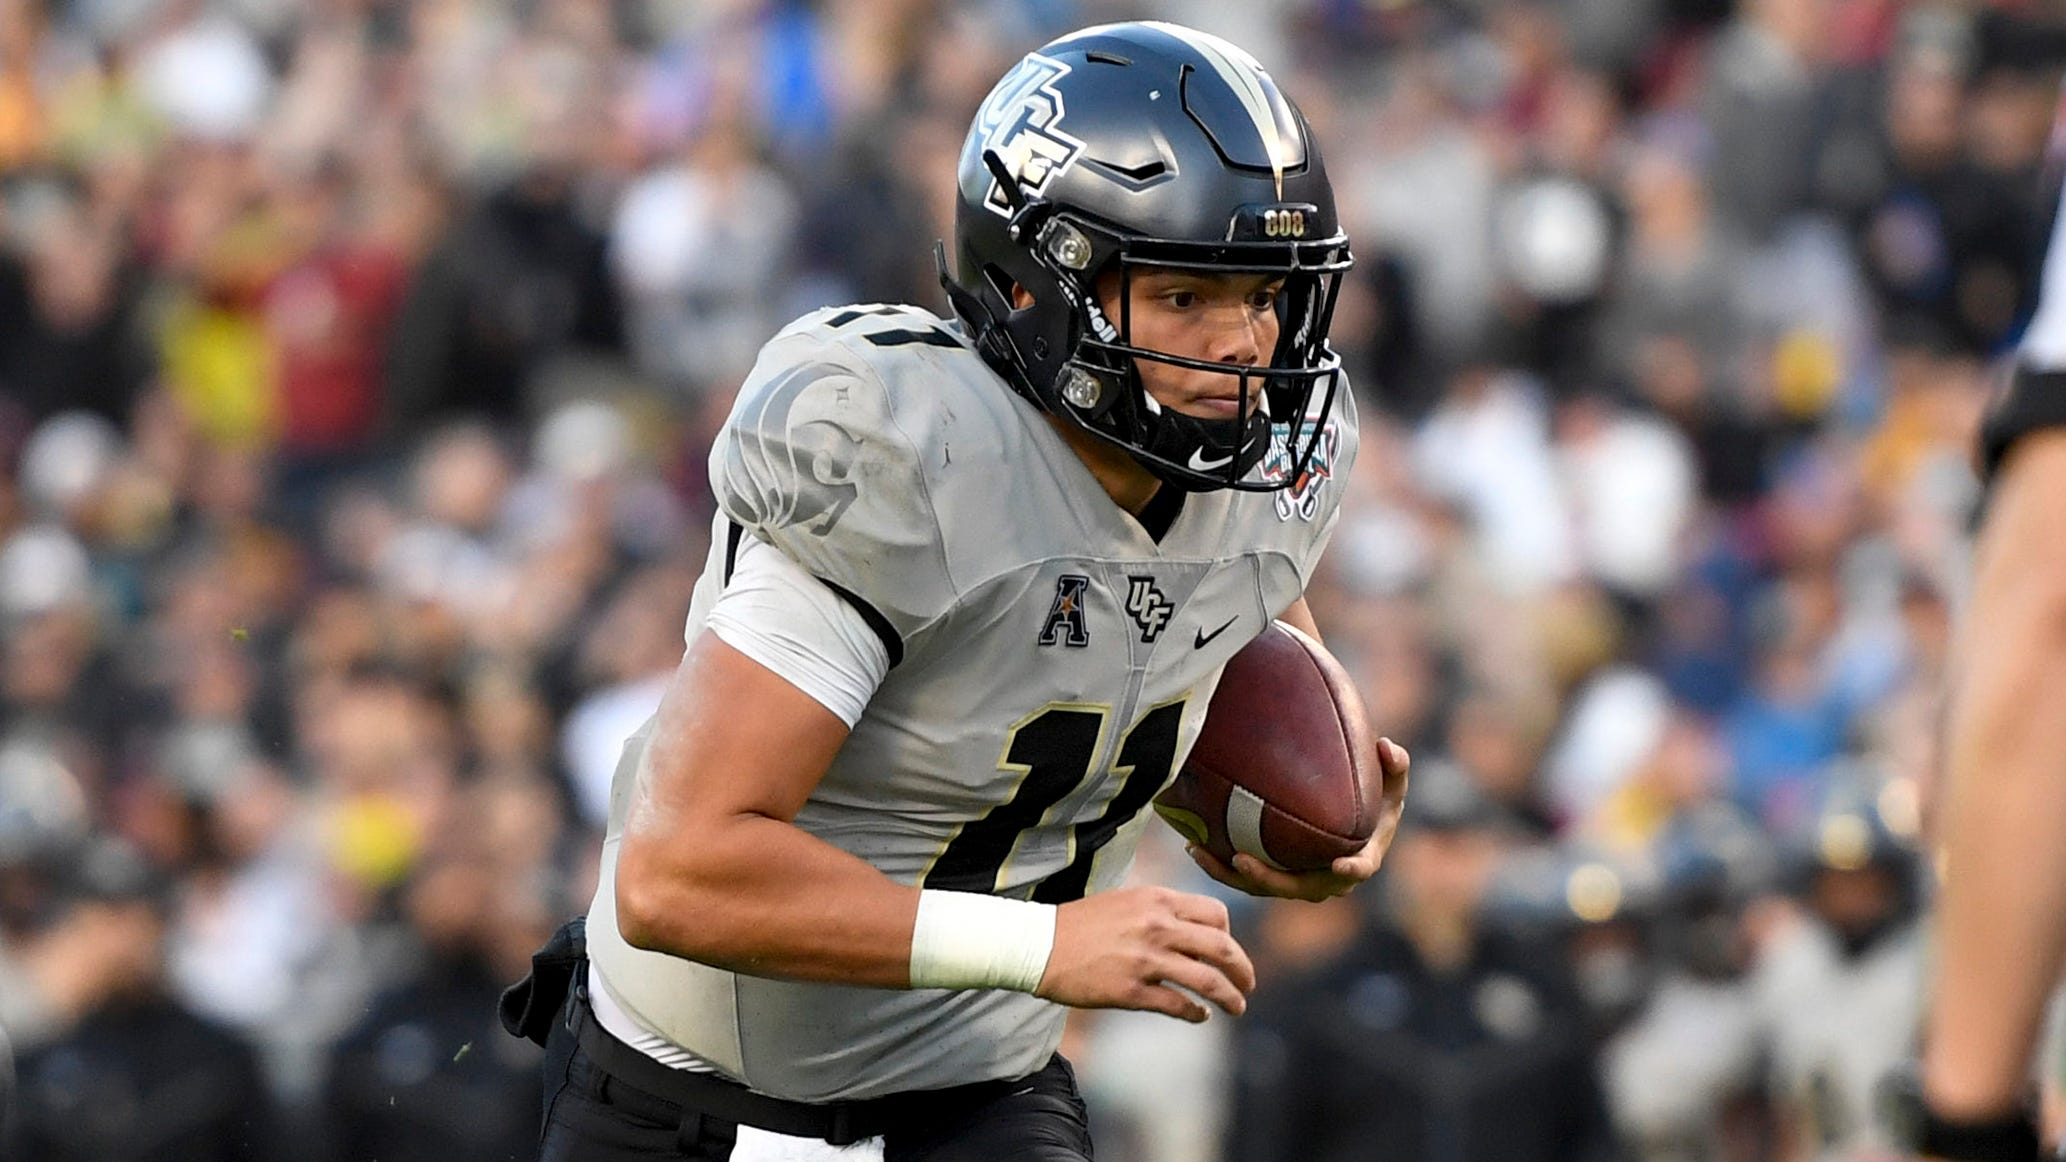 Winners and losers from Week 3 in college football are led by Central Florida, Clemson